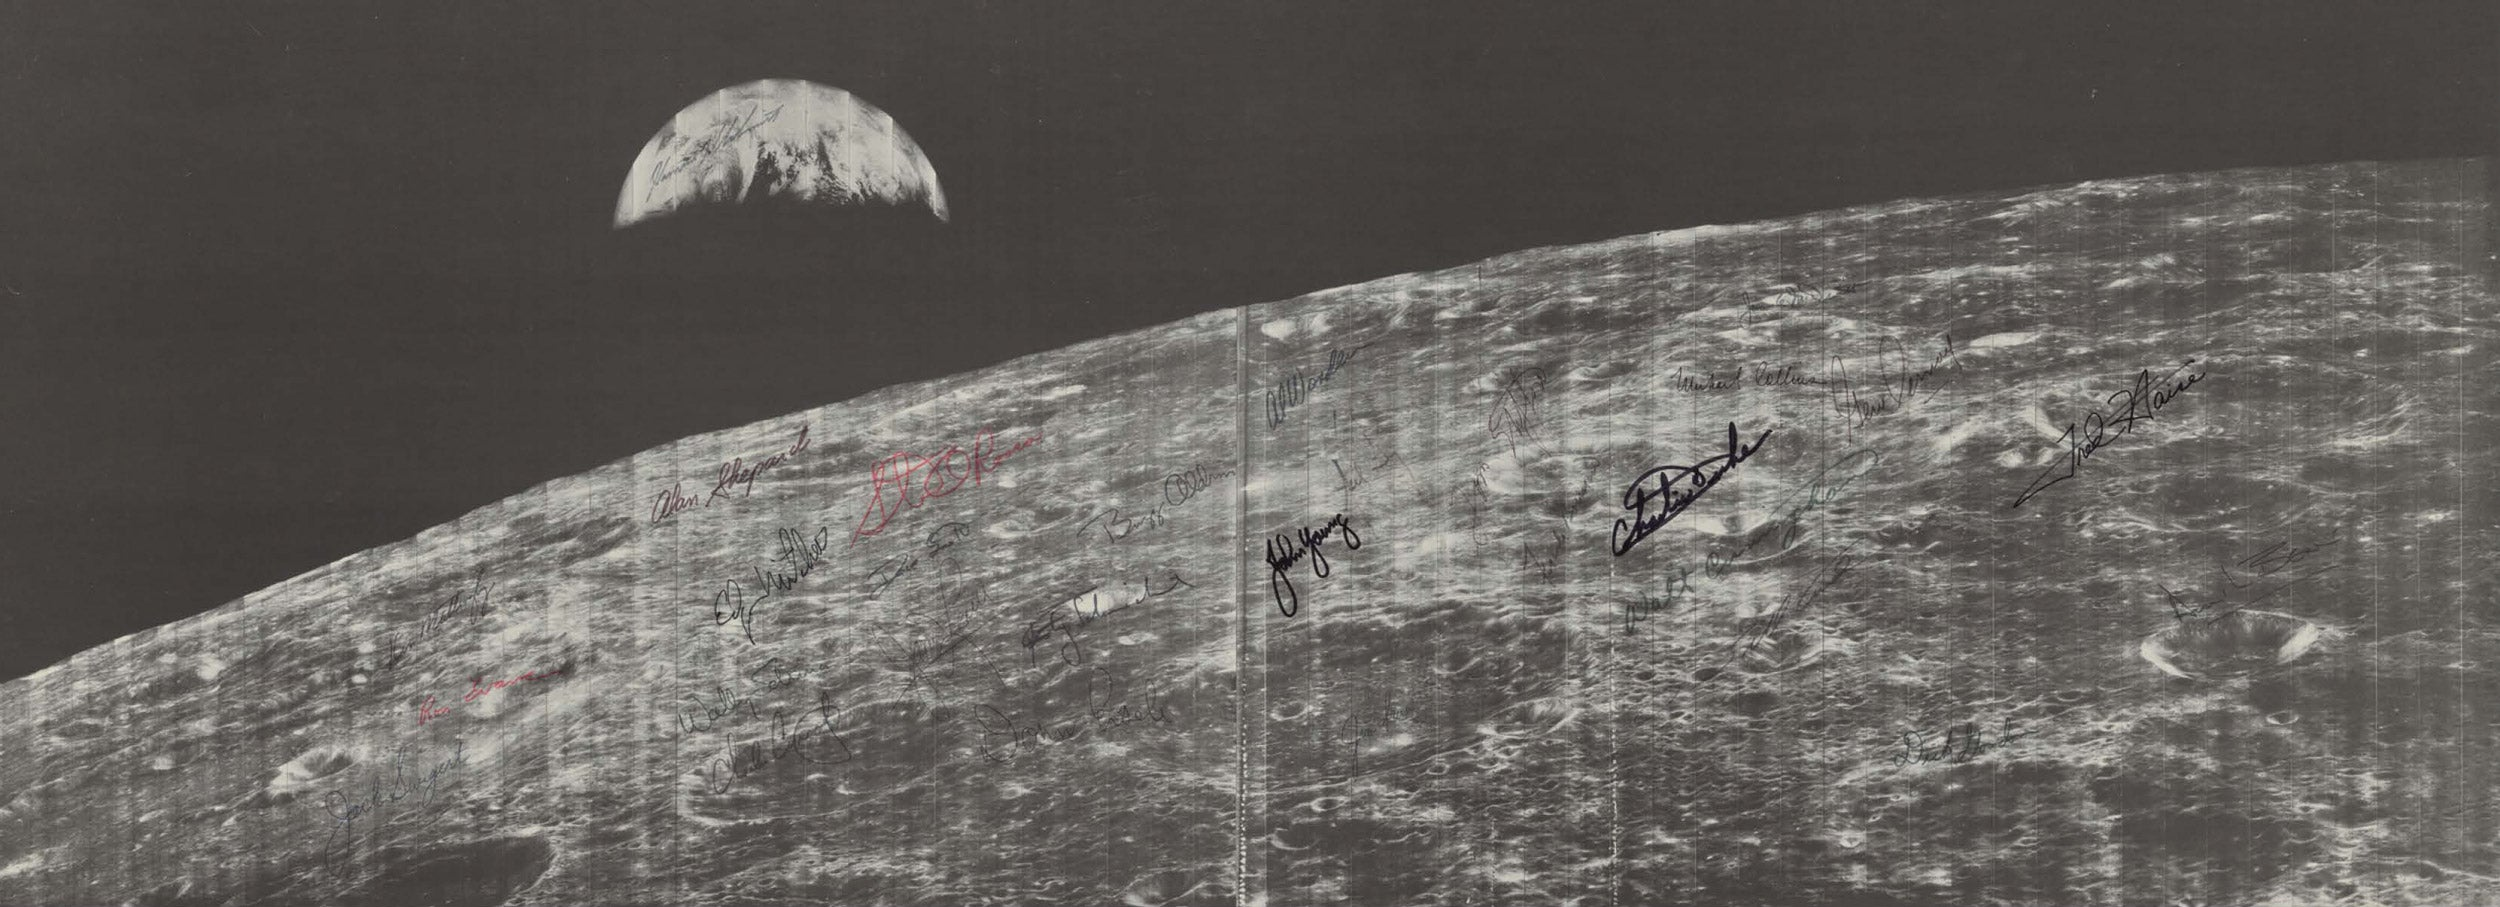 The first image of Earth from deep space, taken by Lunar Orbiter 1 on Aug. 23, 1966, signed by astronauts.